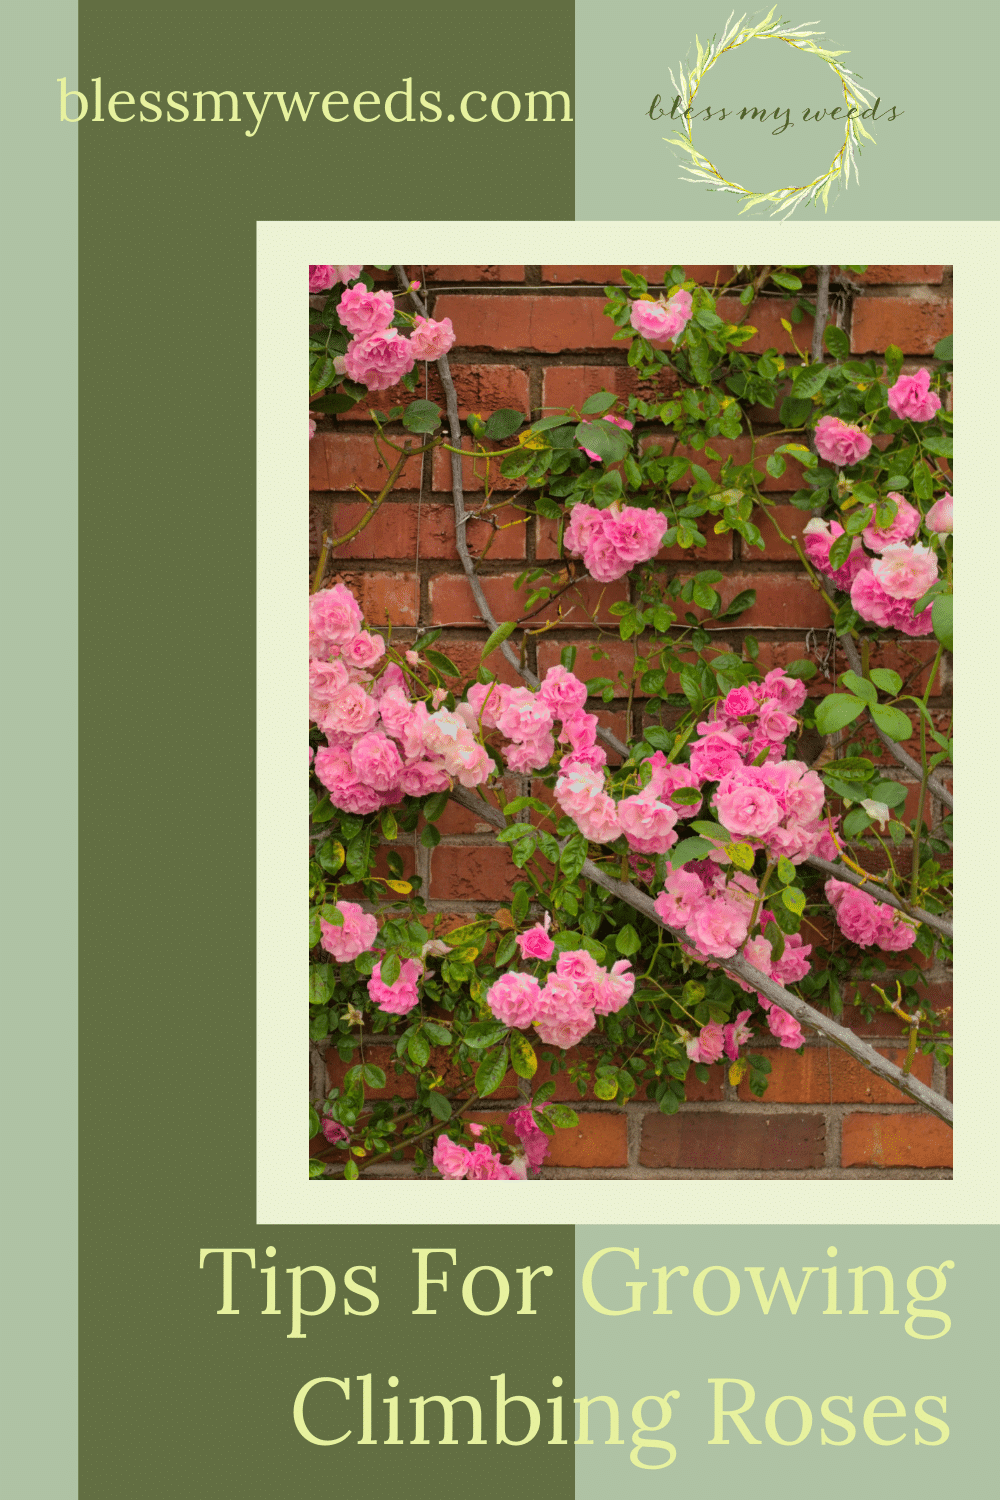 Blessmyweeds.com has all the best ideas and inspo for a perfect yard and garden. If you're looking for an elegant addition to your home landscaping, consider climbing roses. Find out simple ways you can grow perfect climbing roses at your home!